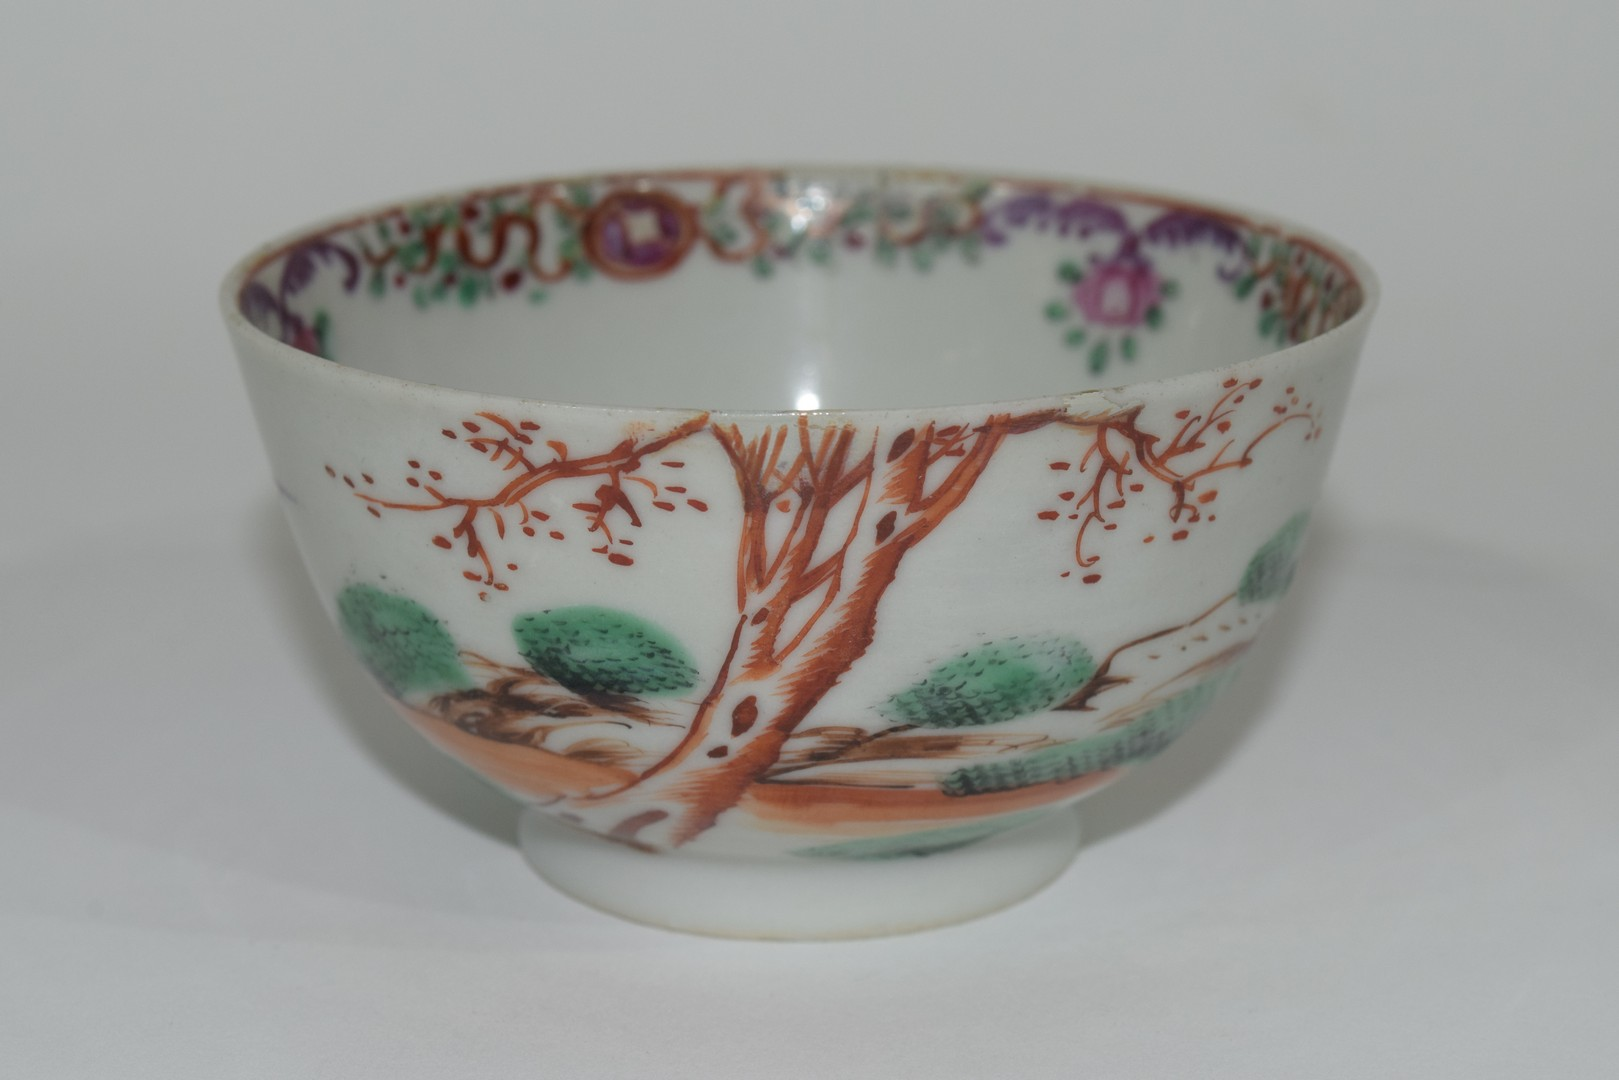 Small Chinese bowl, 18th century - Image 6 of 13